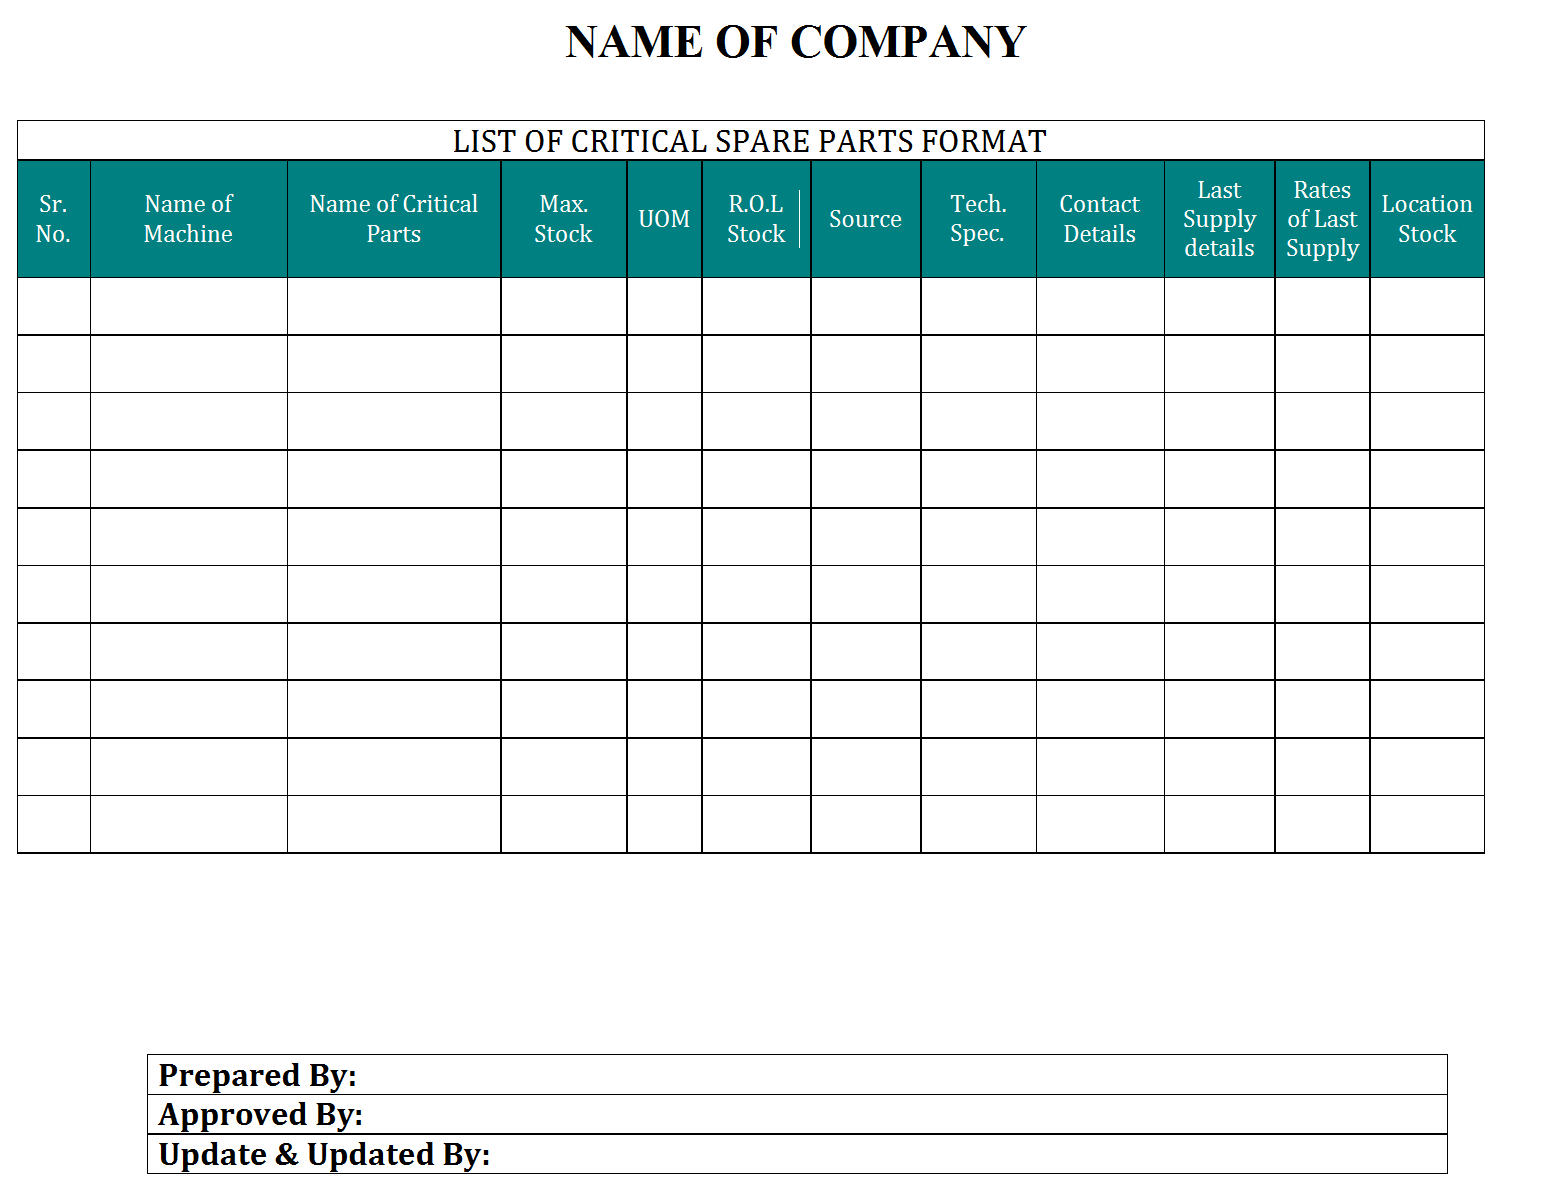 Stock list format notebook paper template word personal letter of list of critical spare parts format samples word document download listof critical spare parts format listof pronofoot35fo Images